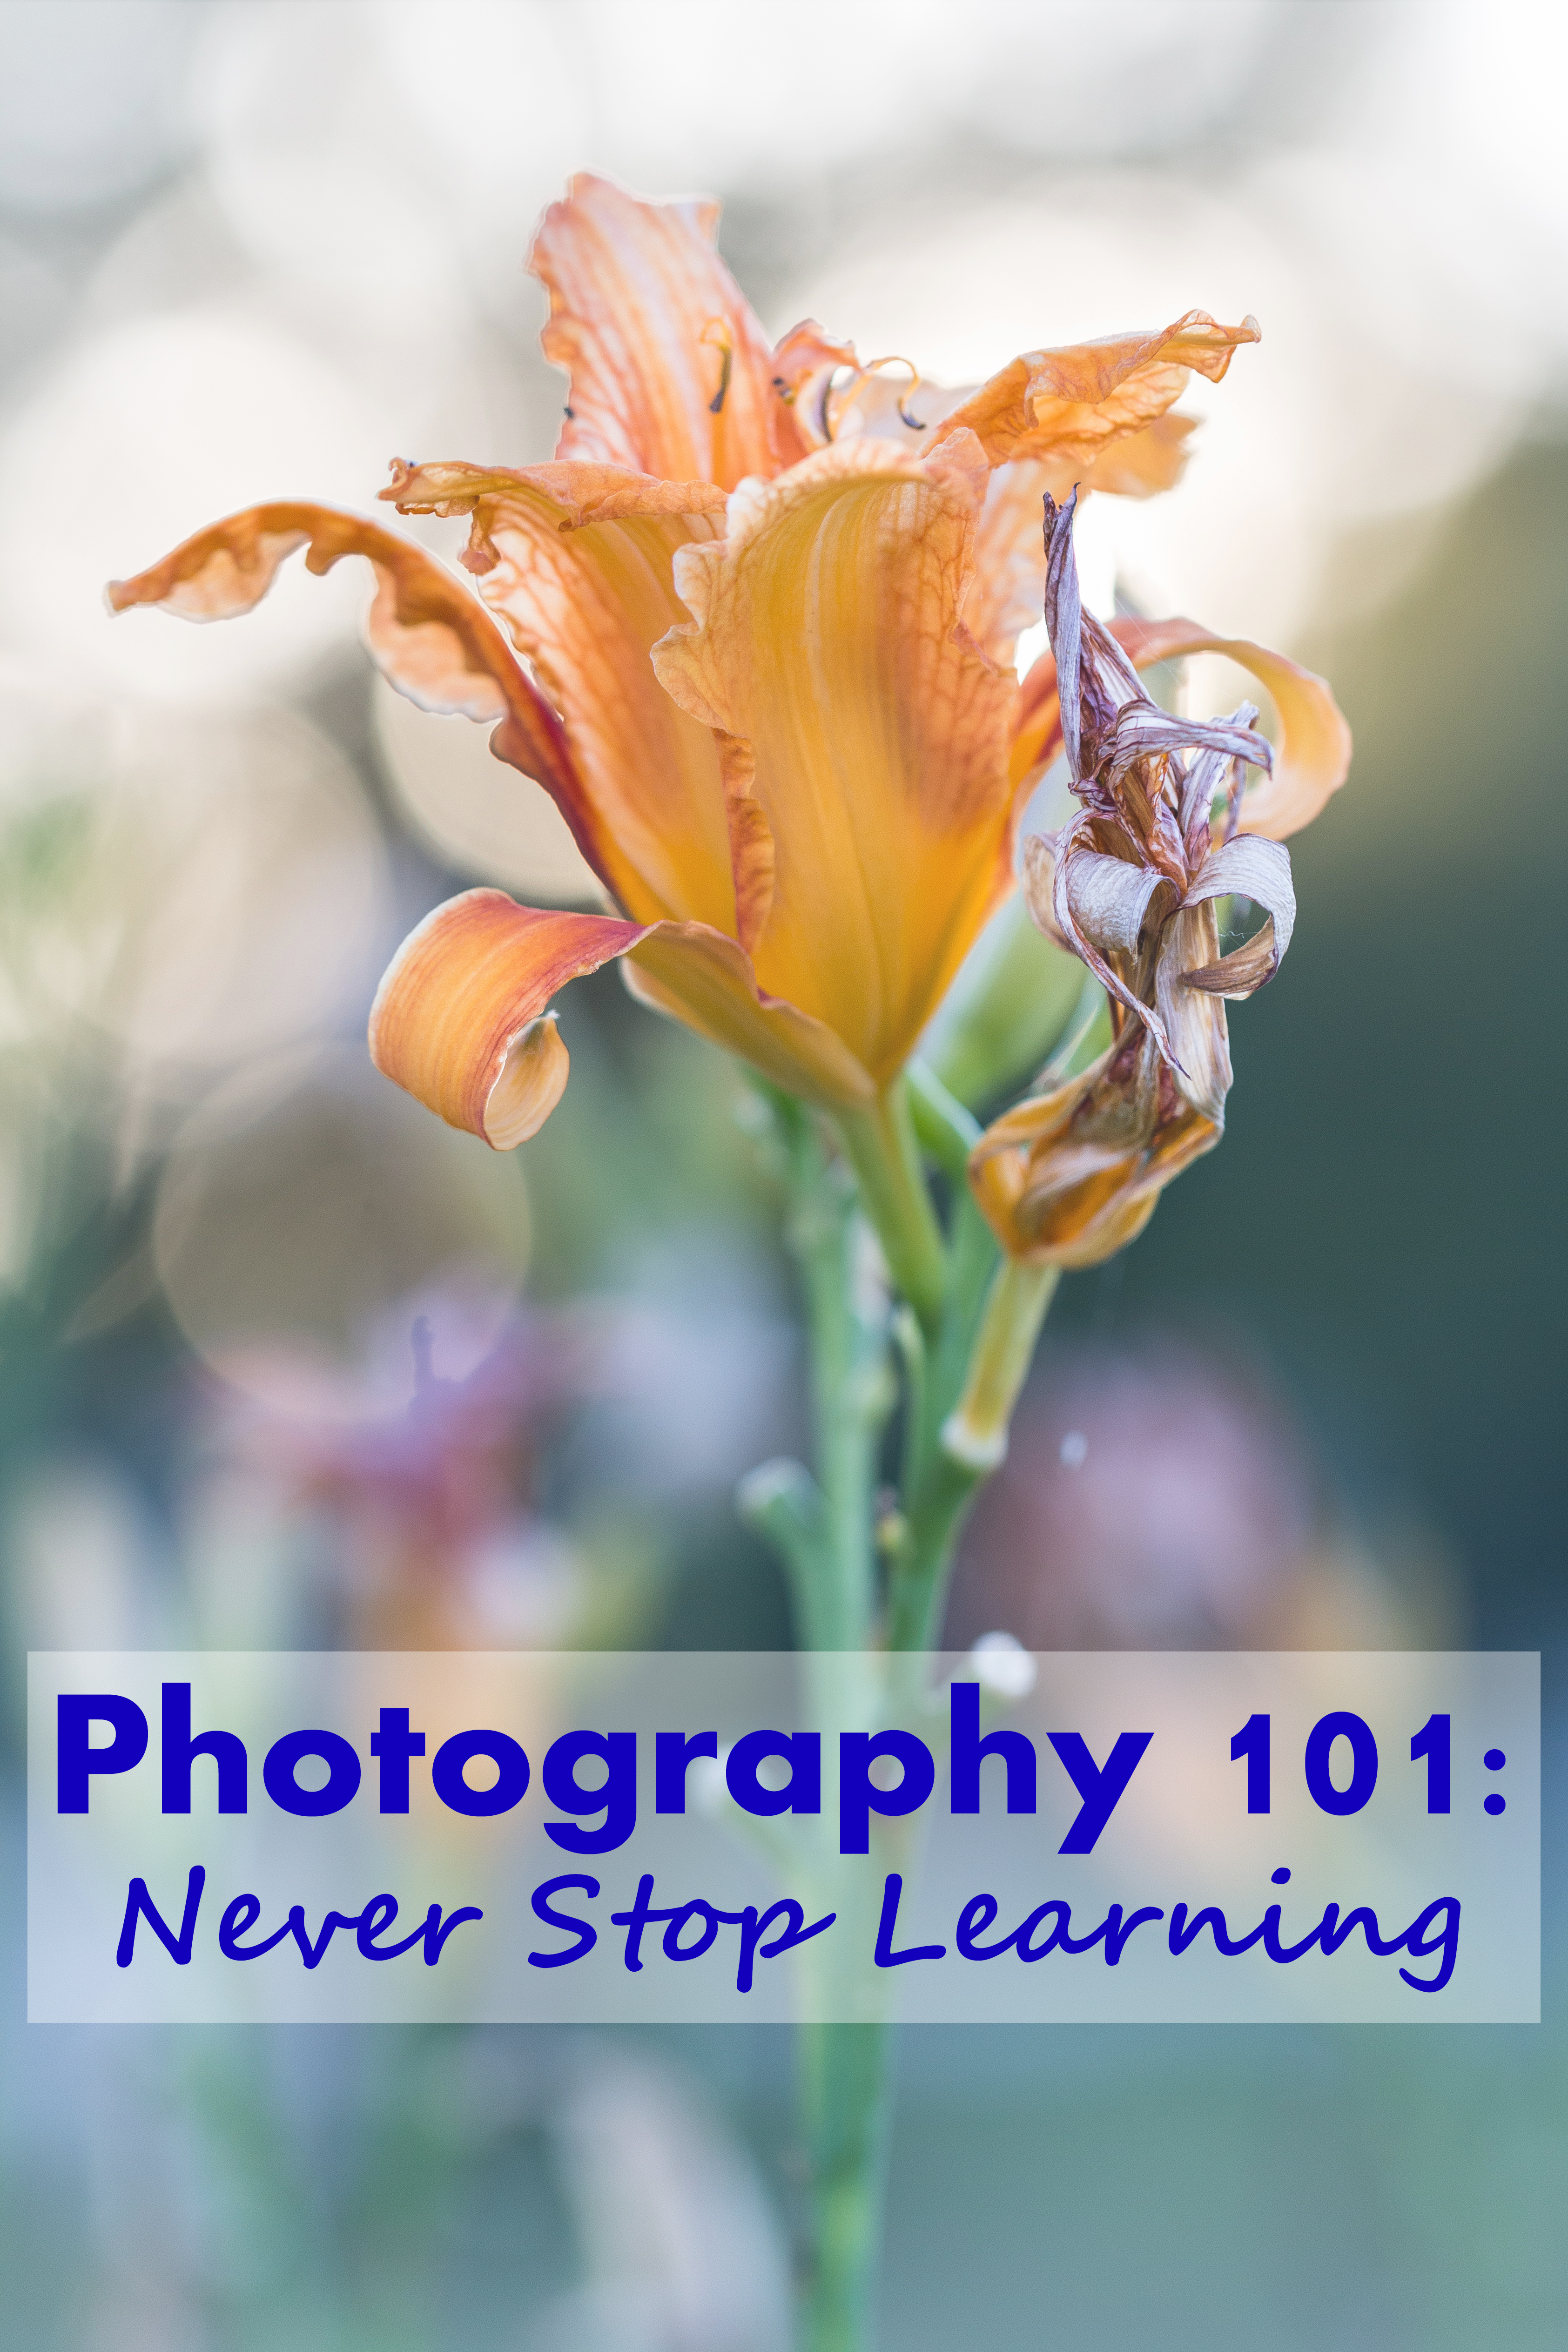 Photography 101: Never Stop Learning - Making an effort to learn new technical, composition, and editing techniques on a regular basis is key for staying current in the field and continuing to improve your skills as a photographer. | https://www.roseclearfield.com